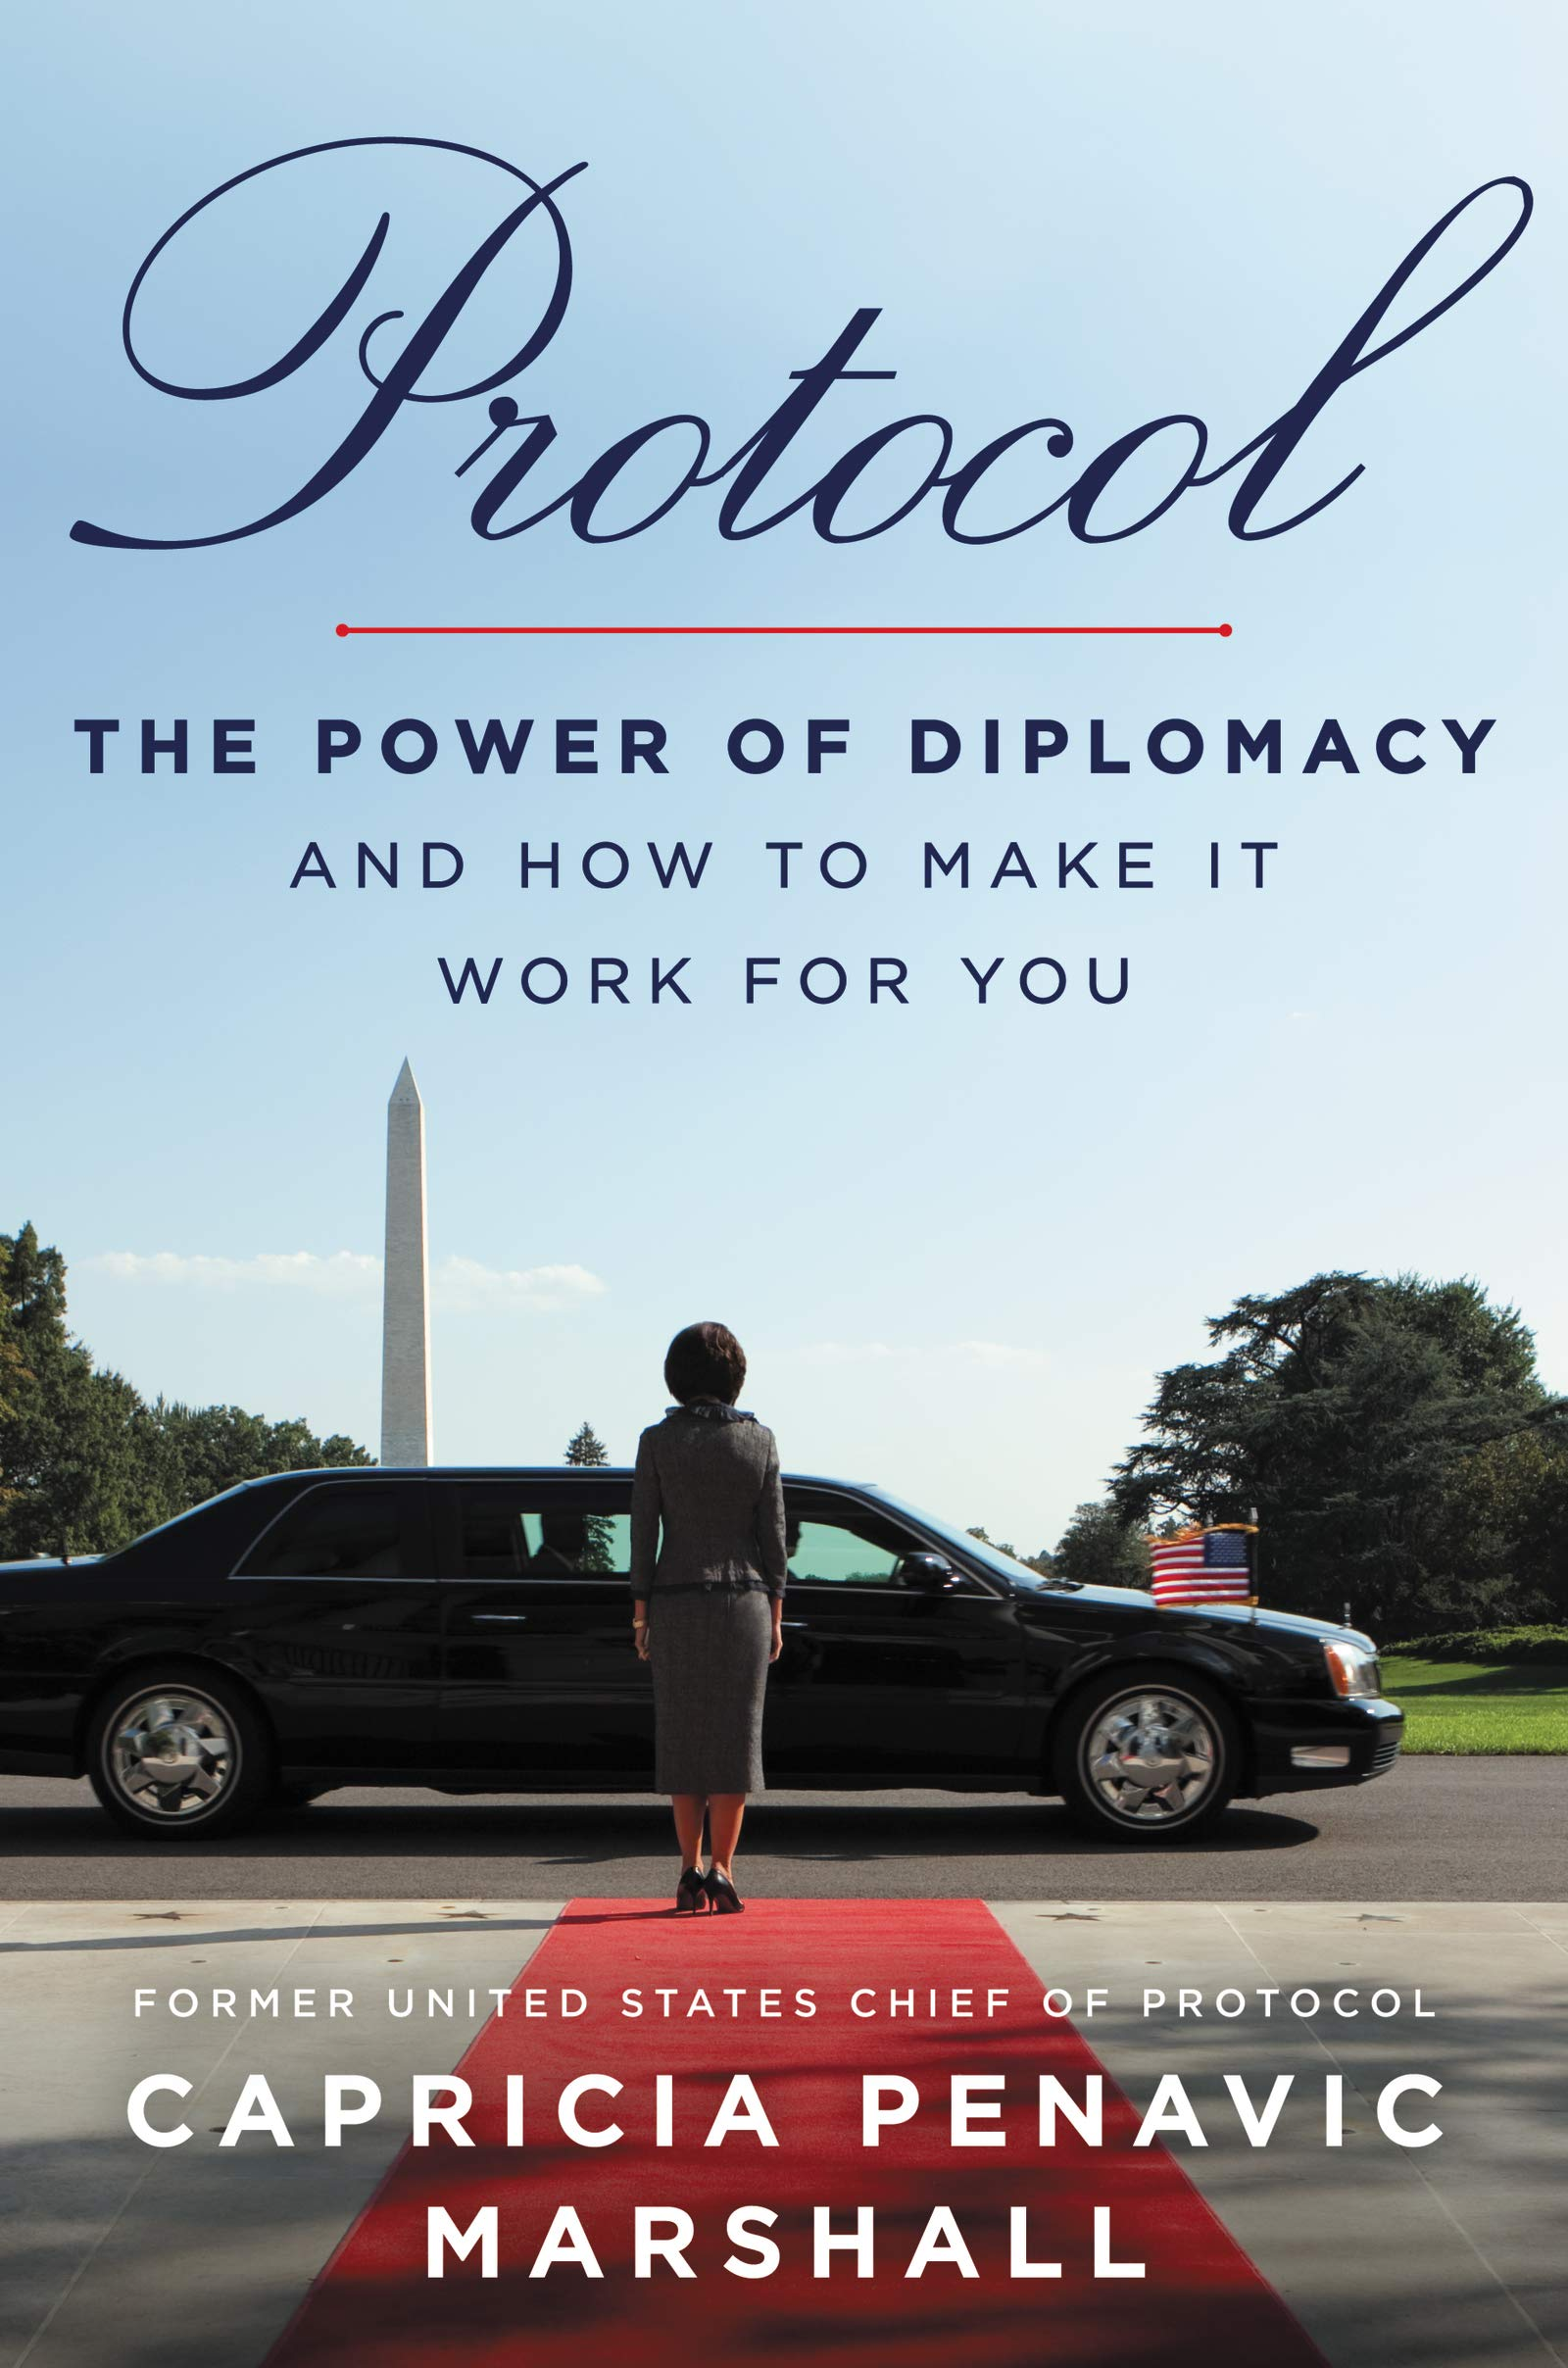 Protocol: The Power of Diplomacy and How to Make It Work for You: Marshall,  Capricia Penavic: 9780062844460: Amazon.com: Books